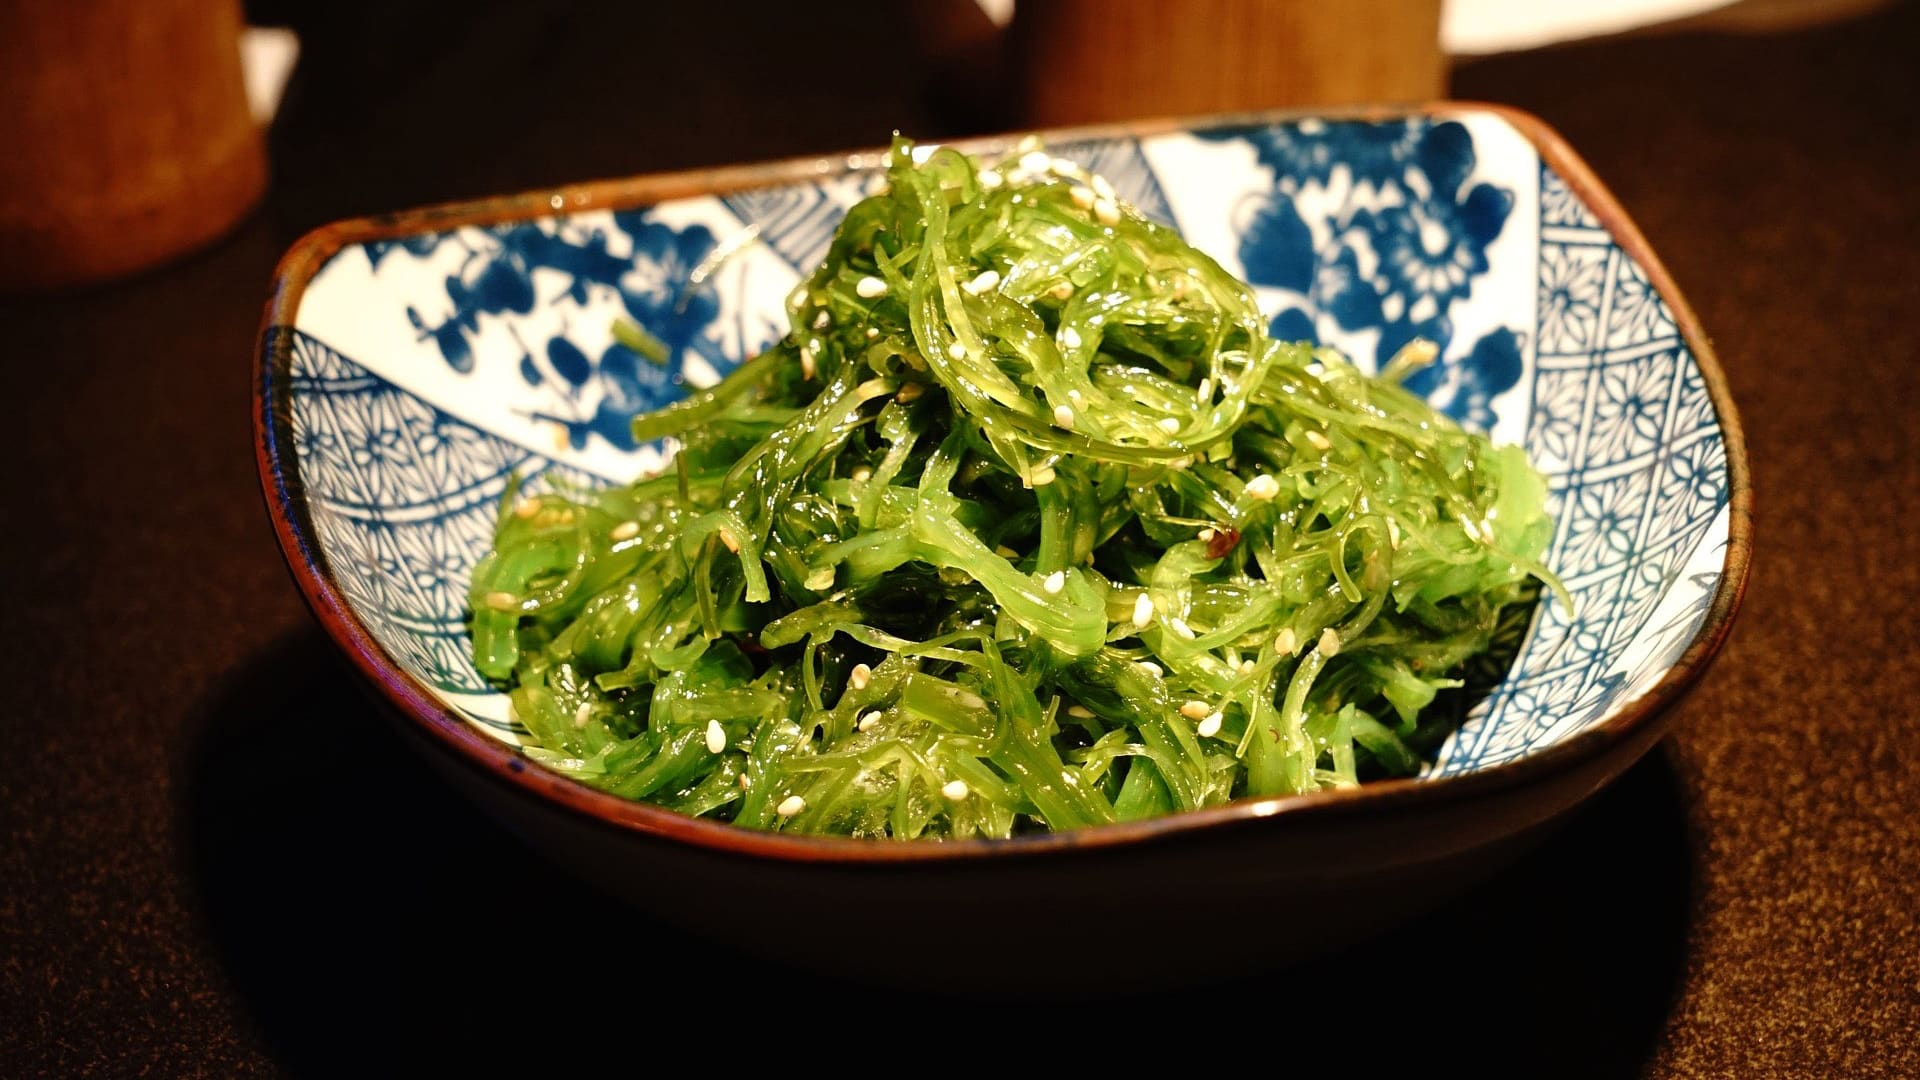 wakame seaweed salad may lower blood pressure